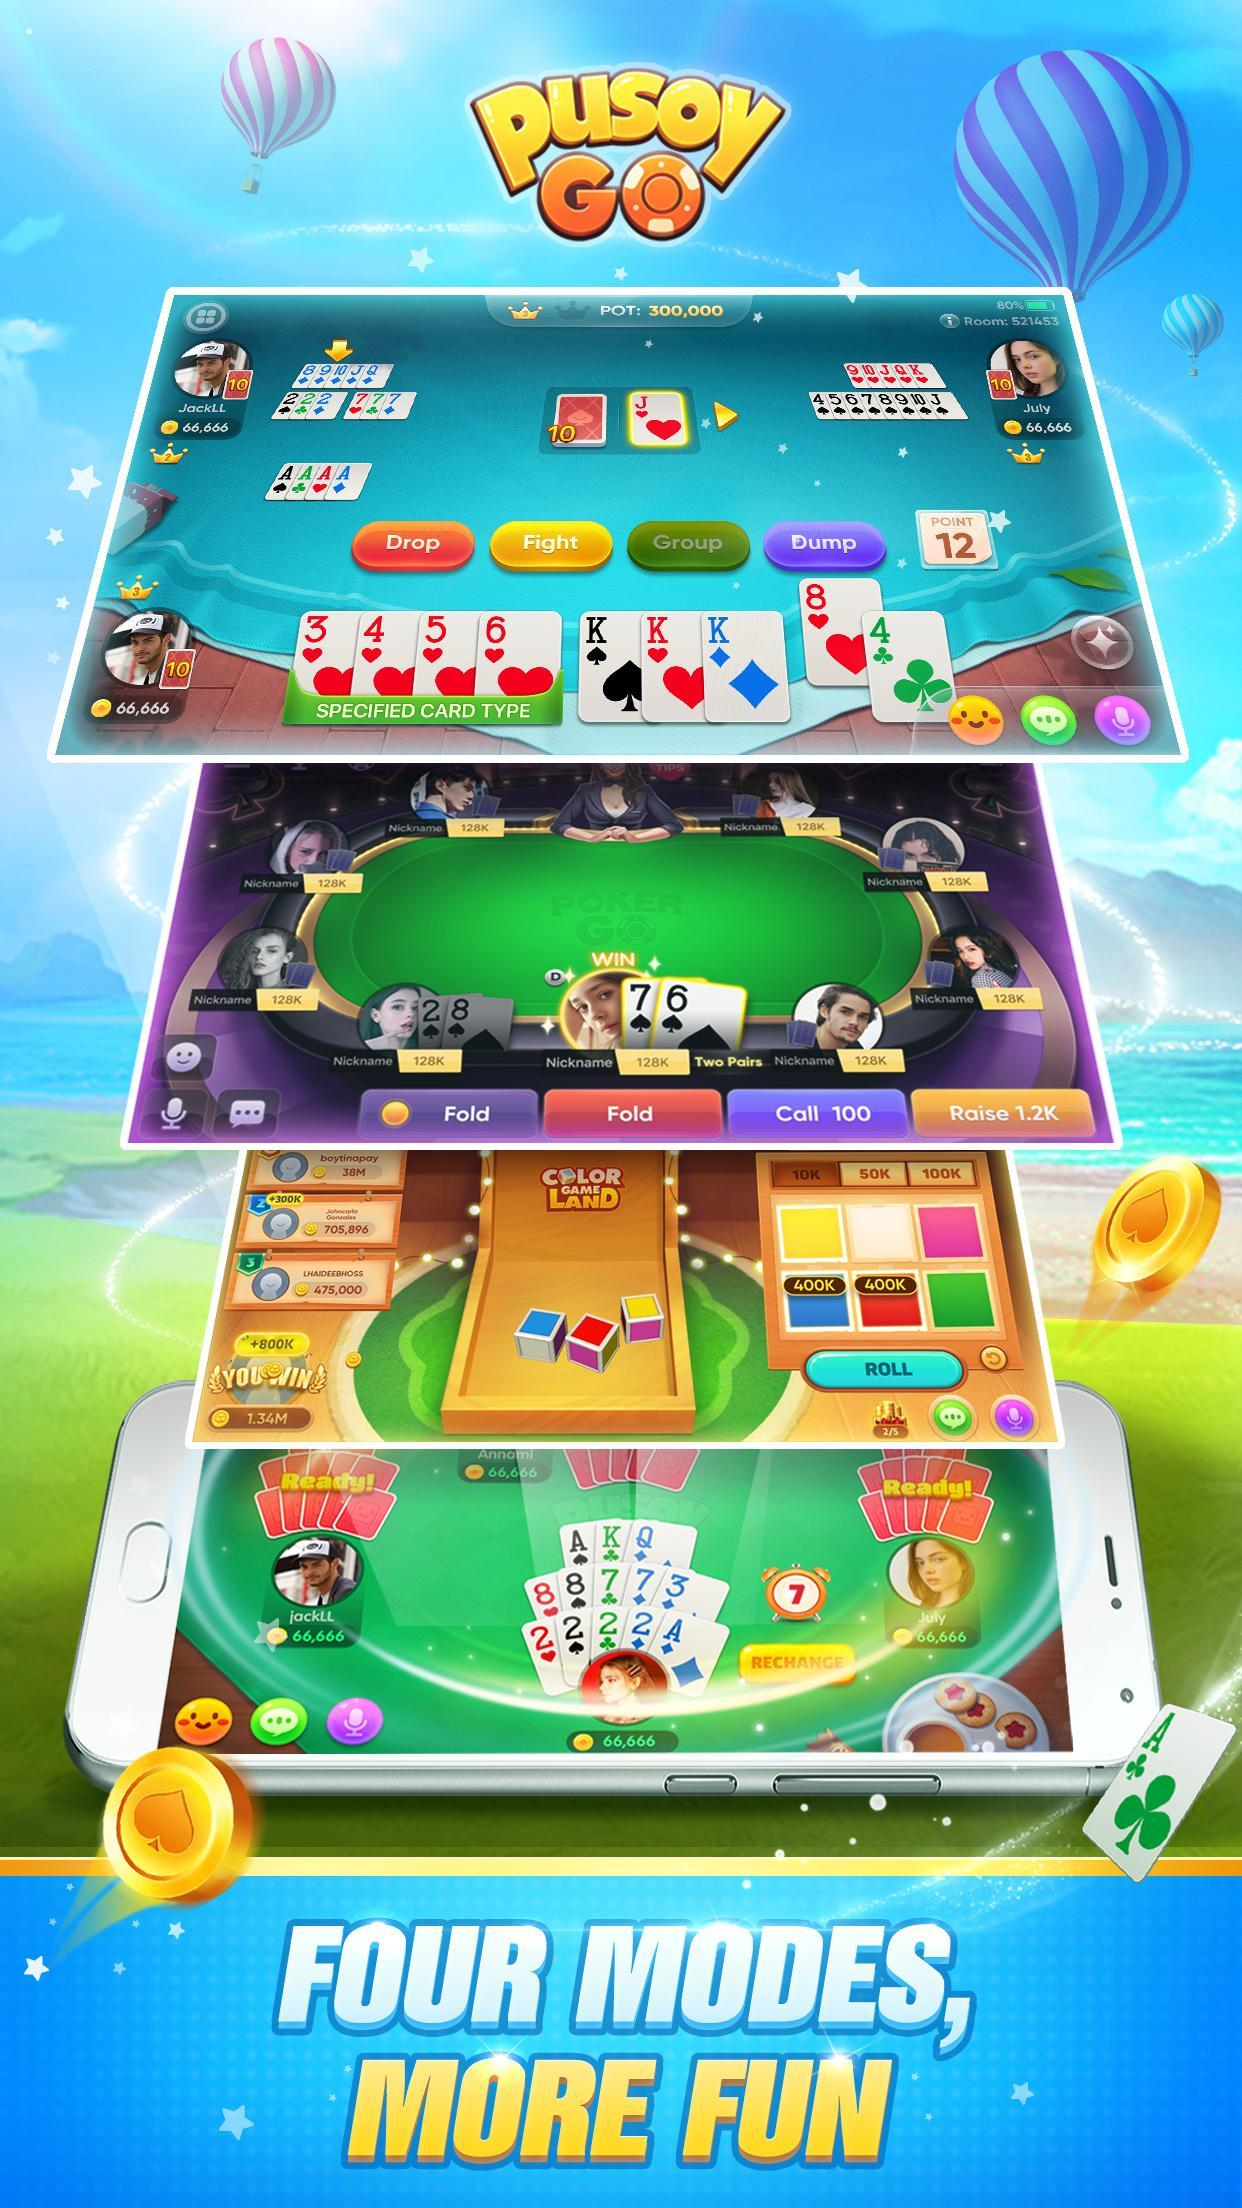 Pusoy Go Free Online Chinese Poker(13 Cards game) 2.9.24 Screenshot 1